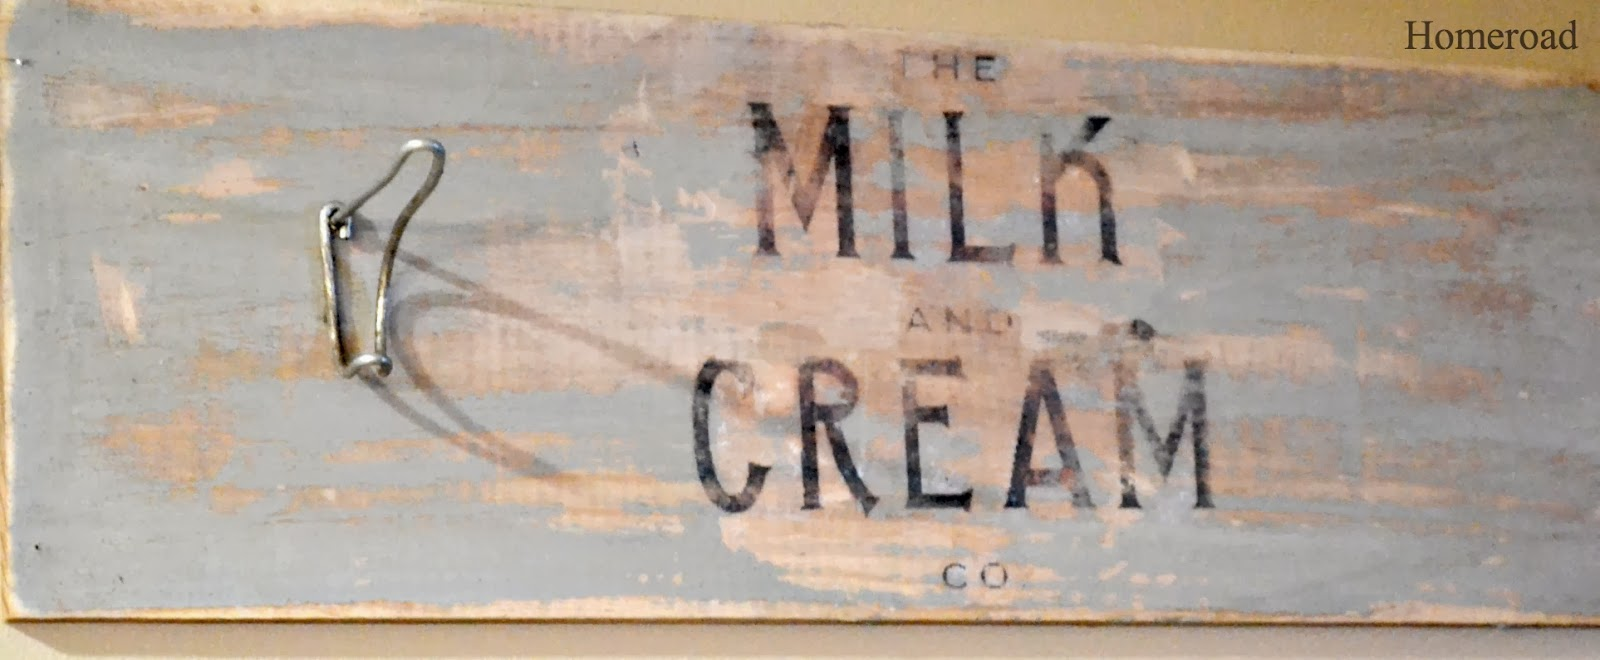 milk and cream crate sign www.homeroad.net